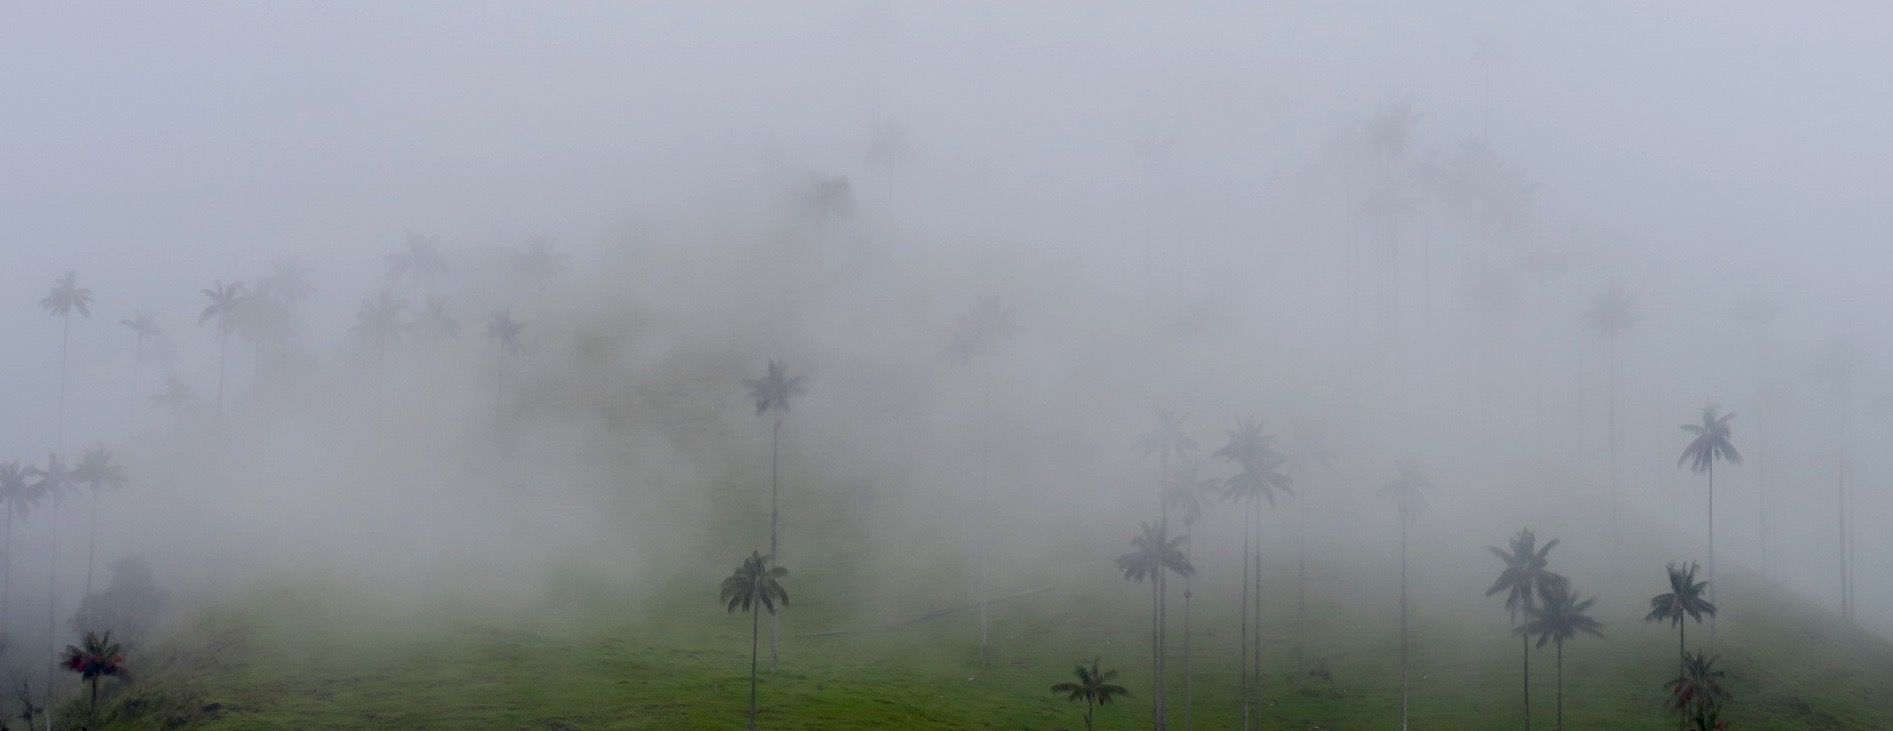 Wax Palms in the Fog, Valle de Cocora